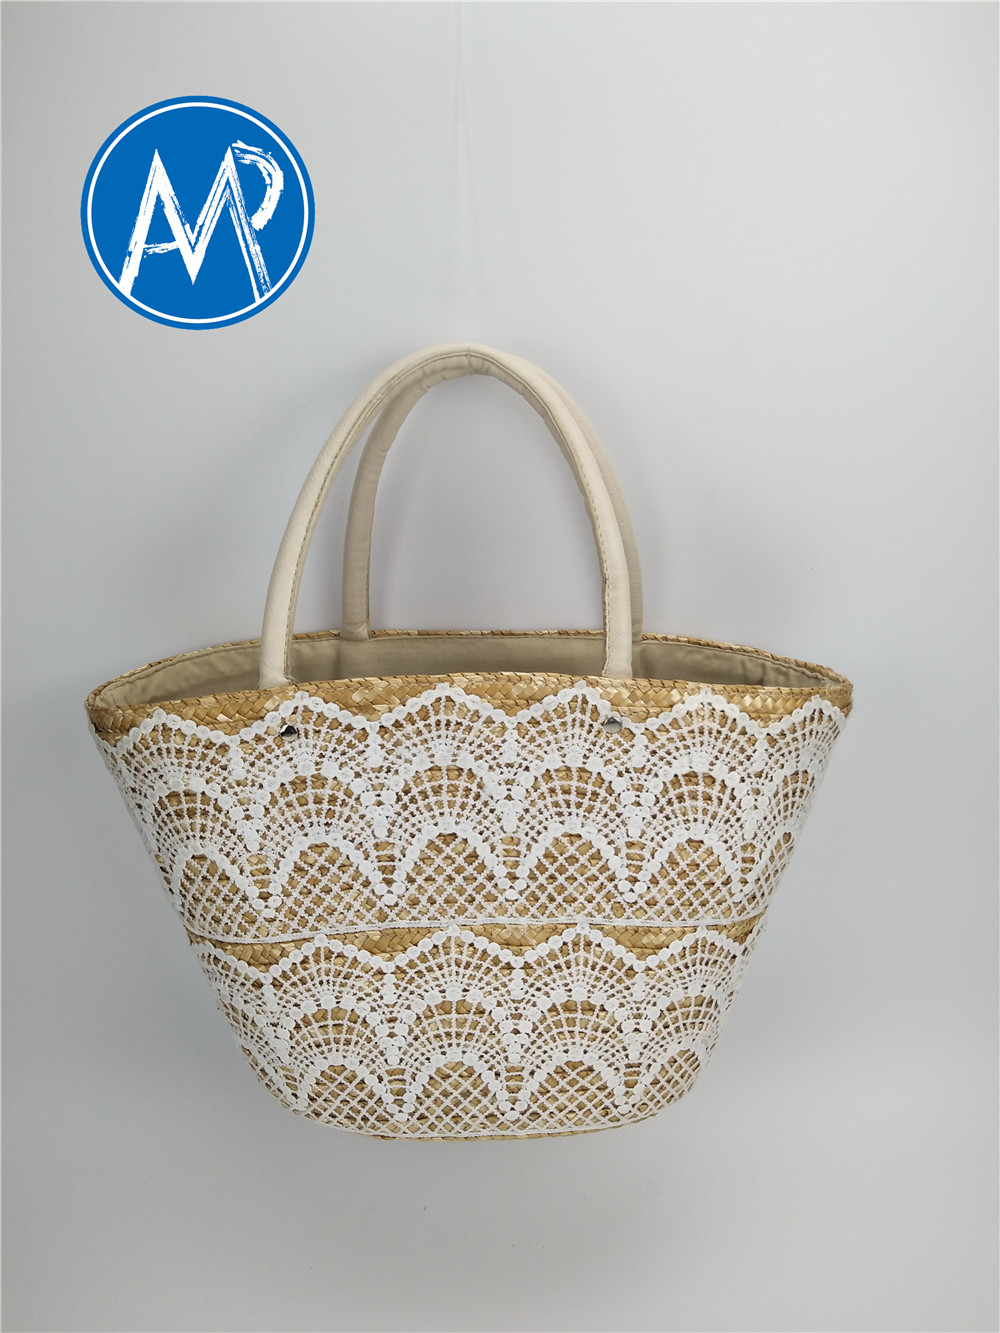 wheat woven bag with lace